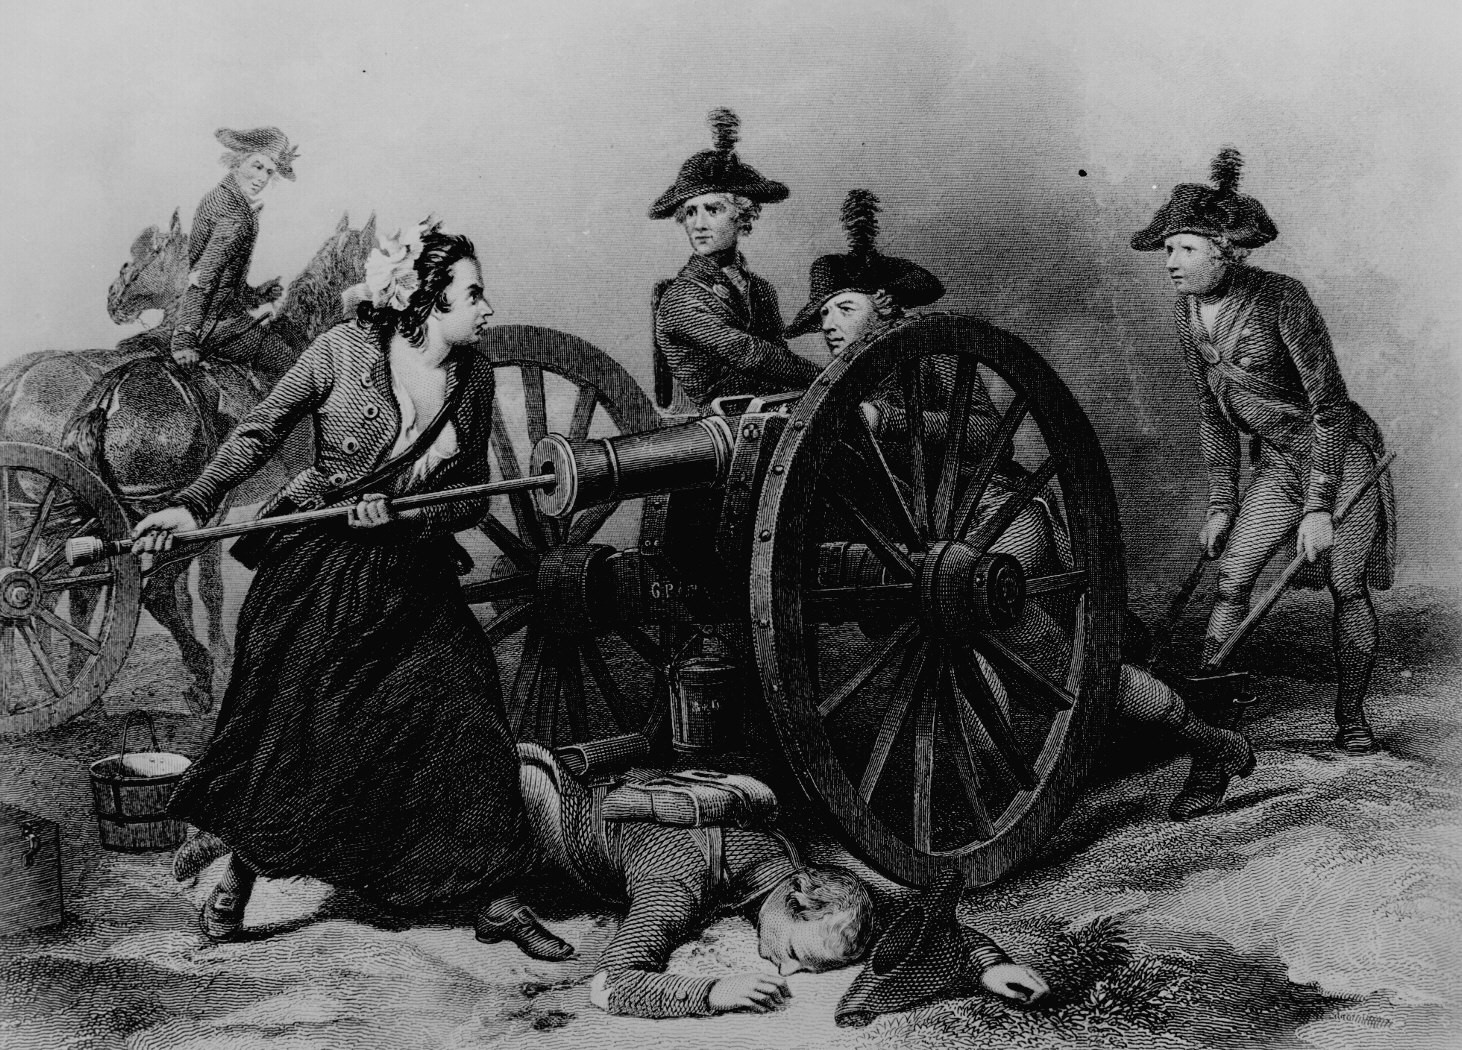 The first woman to receive a U.S. military pension manned her husband's cannon after he was killed